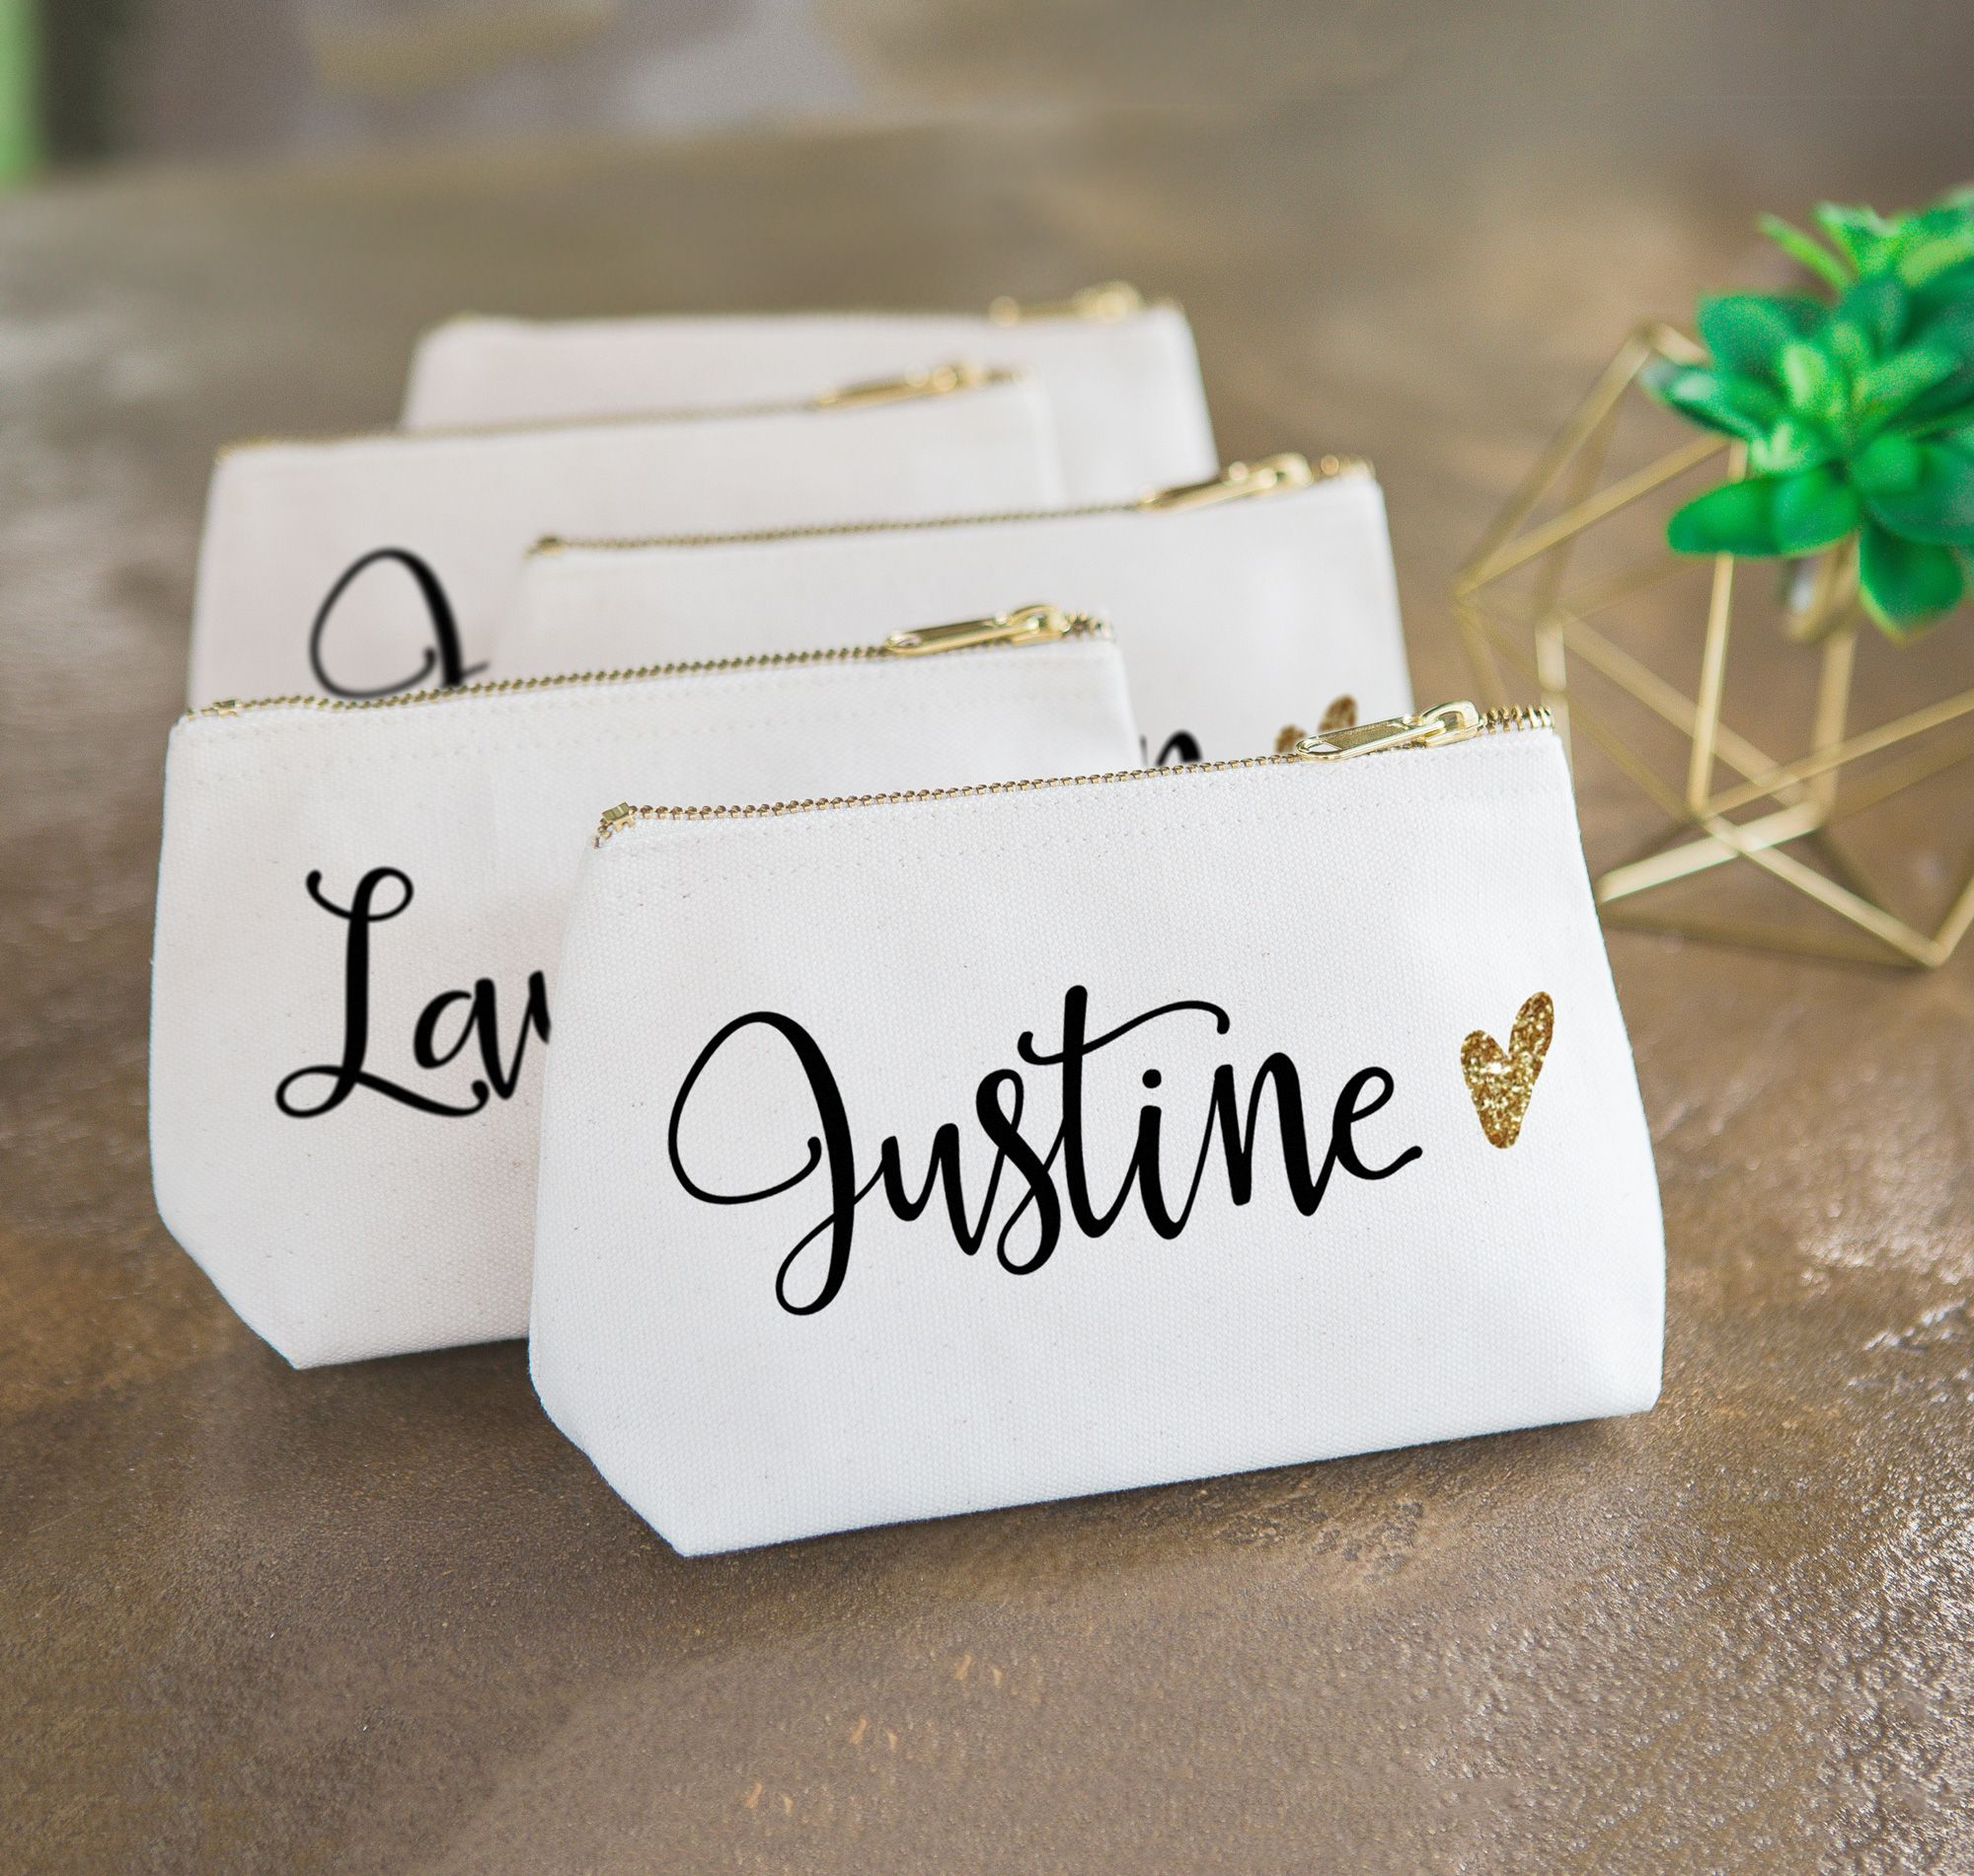 Bridesmaid Gift Ideas - Cute Personalized Bags for the Bridal Party ...